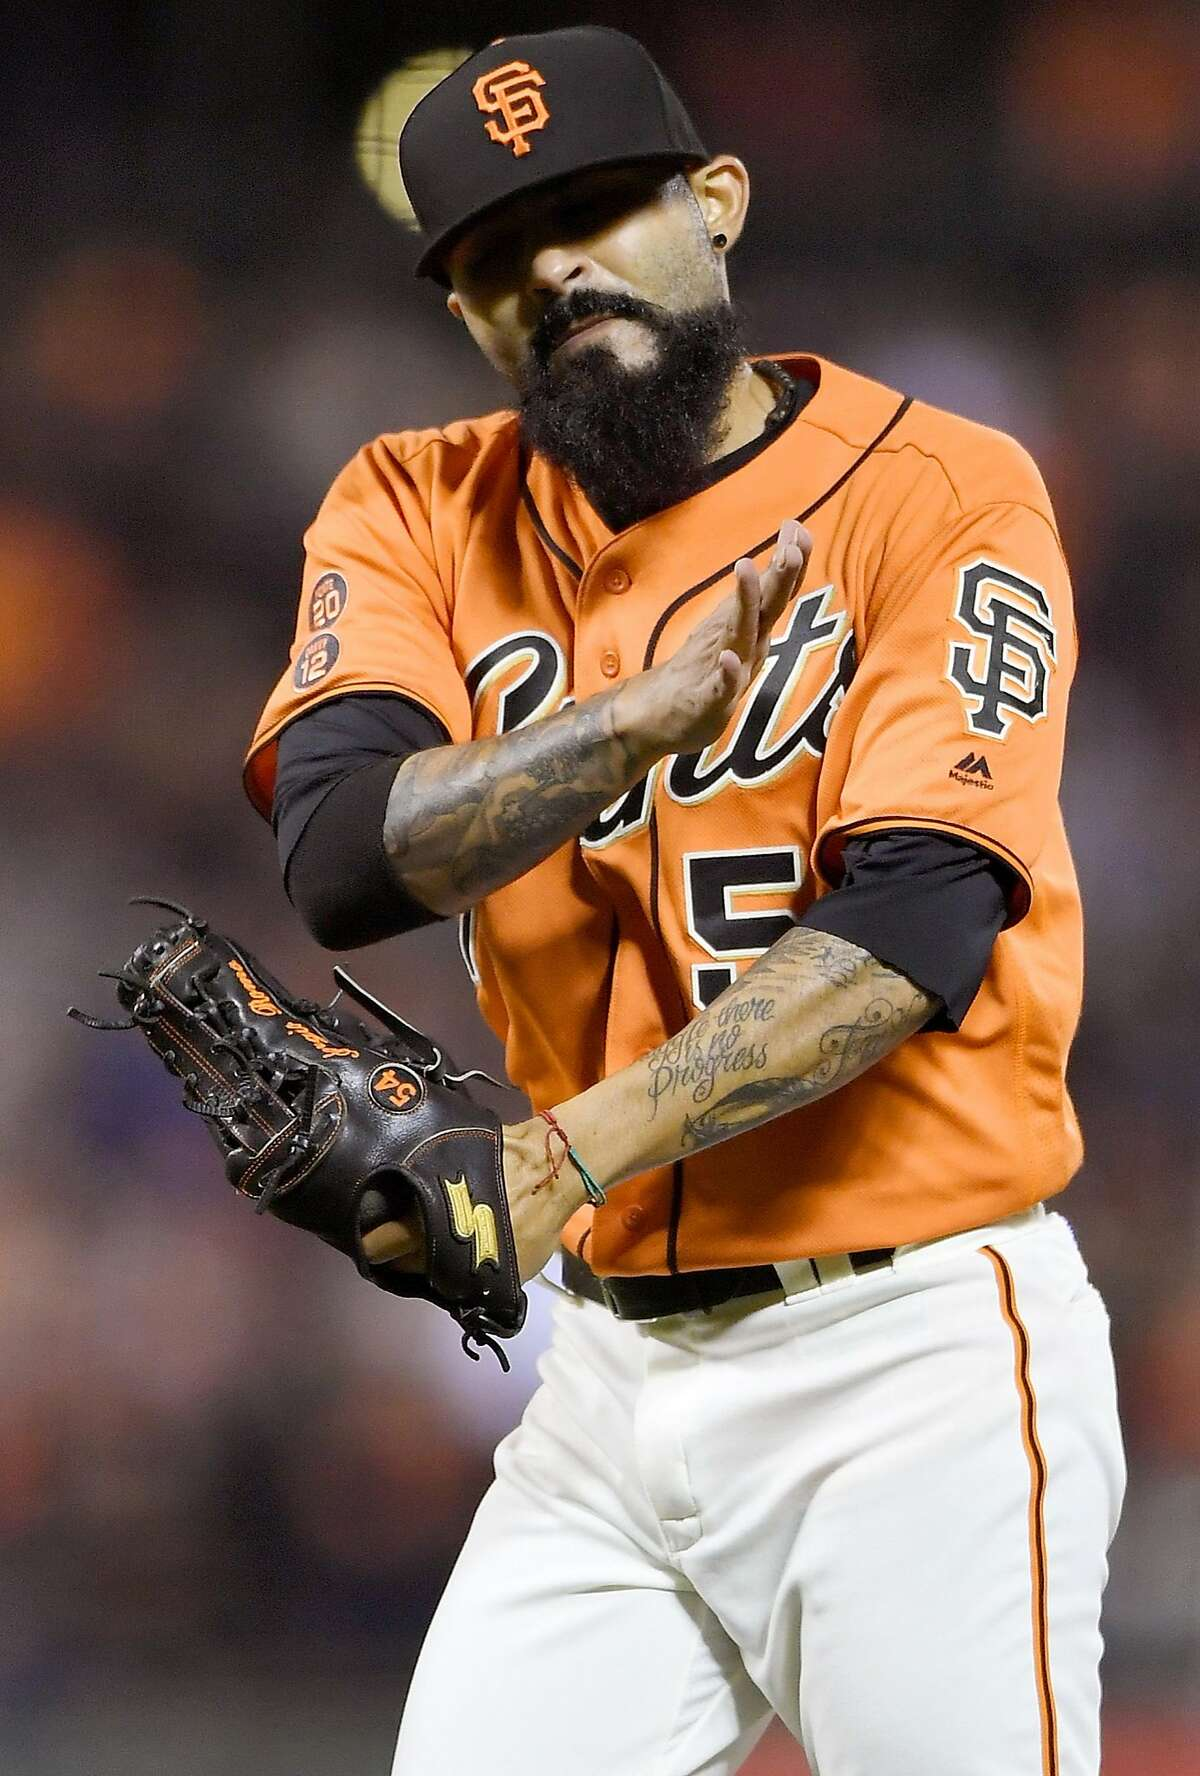 Sergio Romo #54 of the San Francisco Giants reacts after striking out Chris Herrmann #10 of the Arizona Diamondbacks for the third out of the top of the eighth inning at AT&T Park on July 8, 2016 in San Francisco. The Giants won the game 6-2.